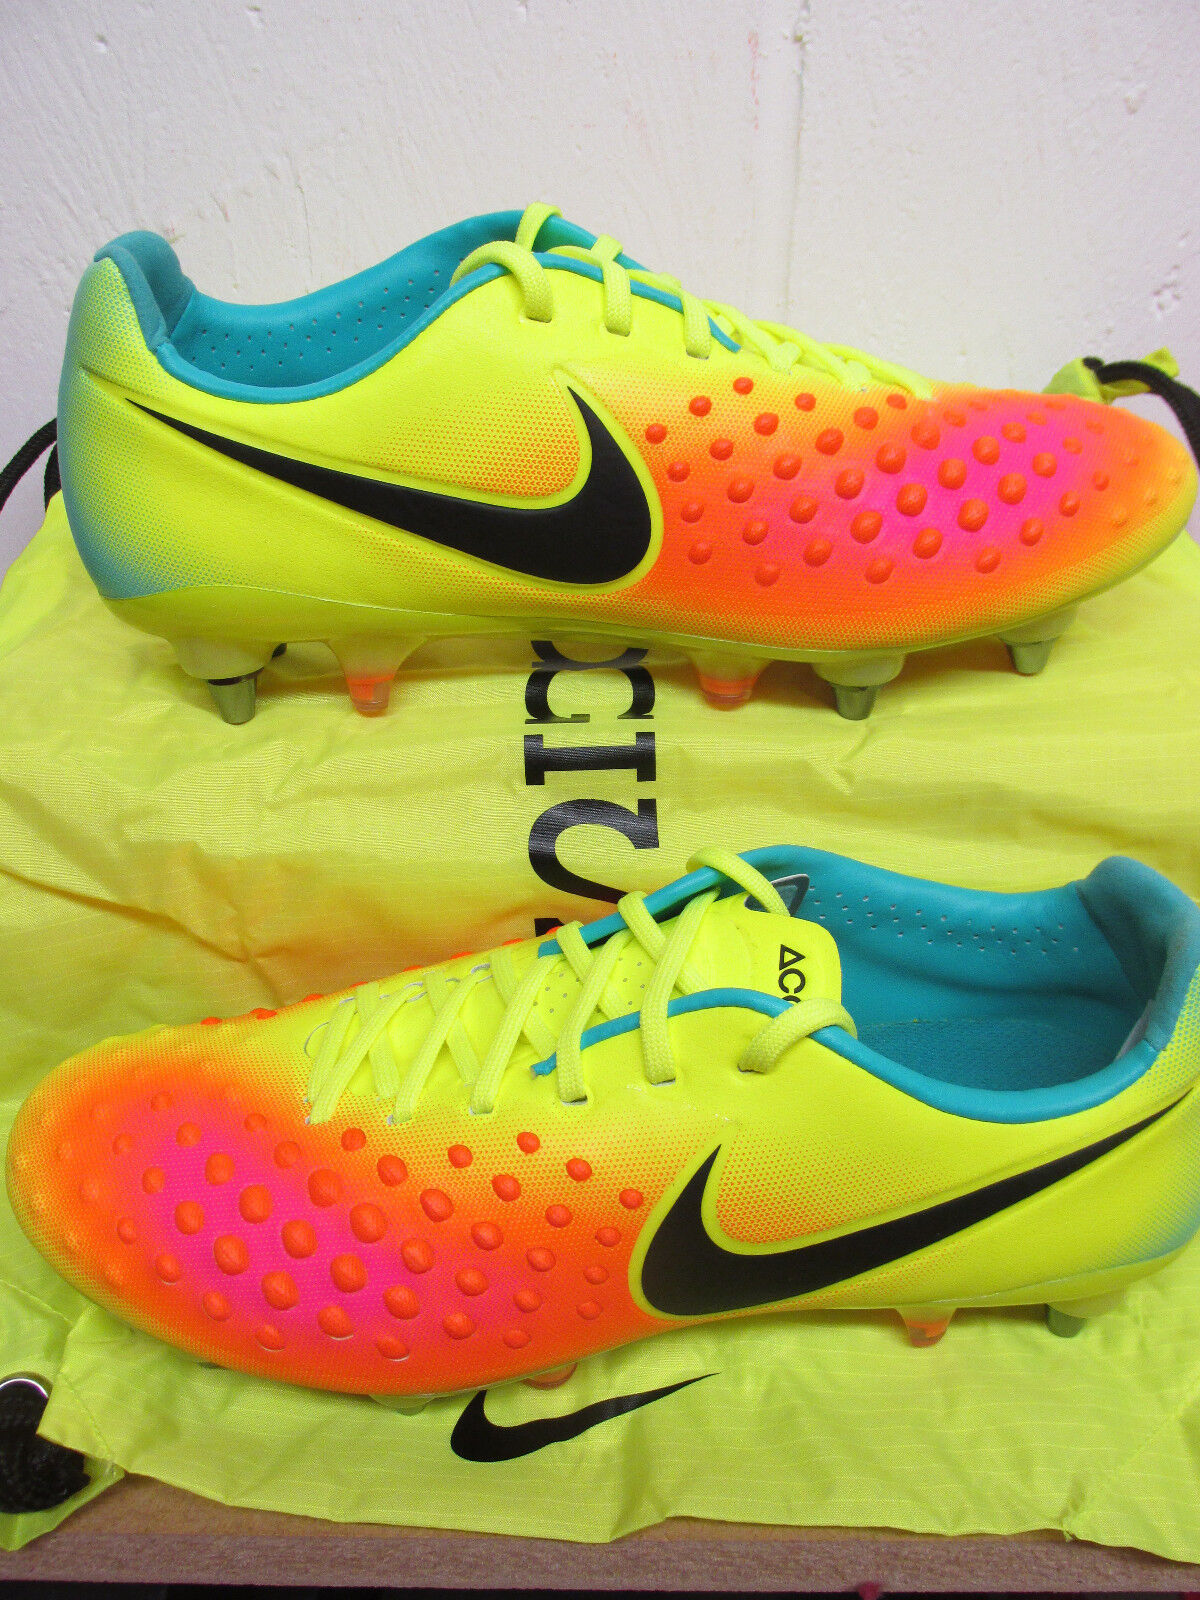 Nike Magista Opus II SG-Pro Mens Football Boots 844597 708 Sneakers shoes